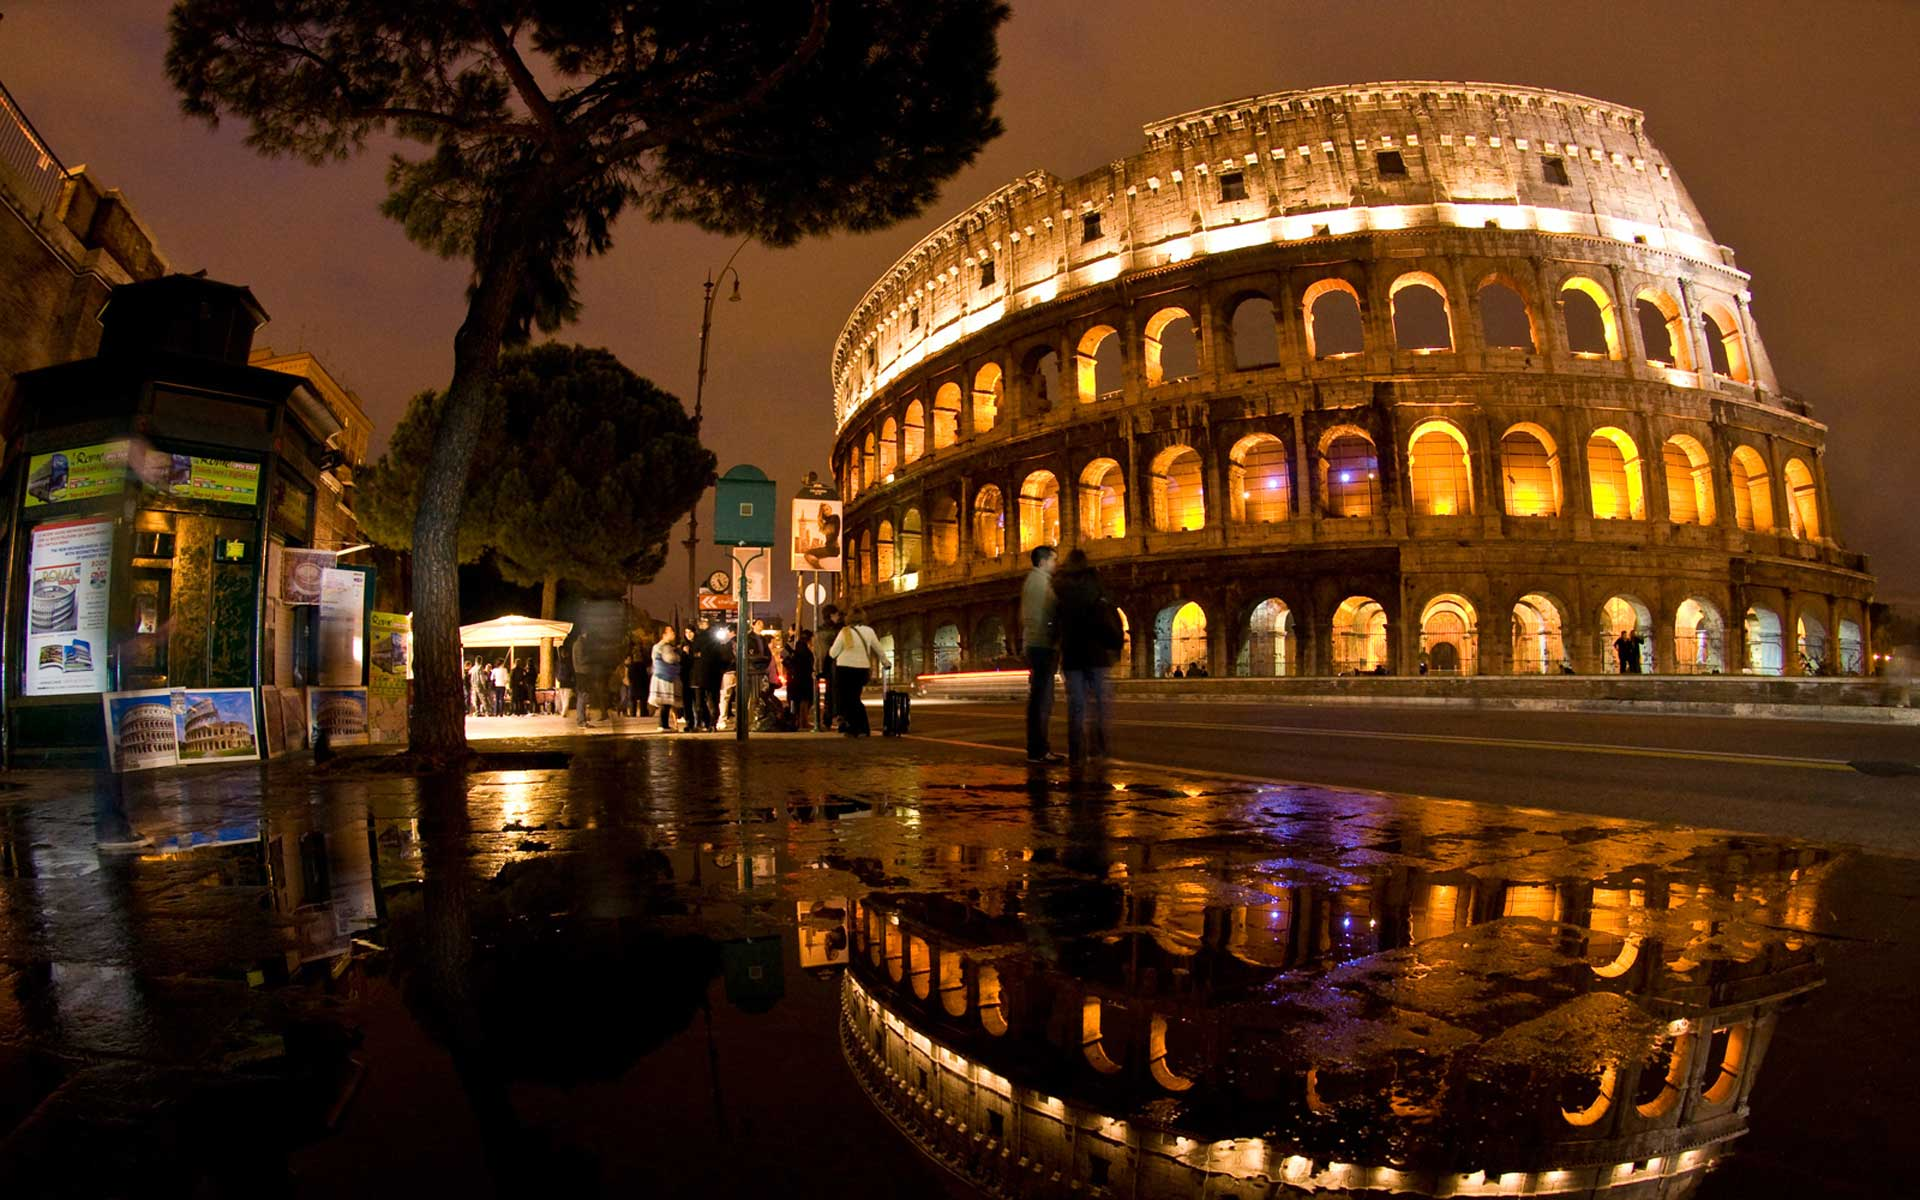 Colosseum wallpapers wallpaper cave for Wallpaper italia